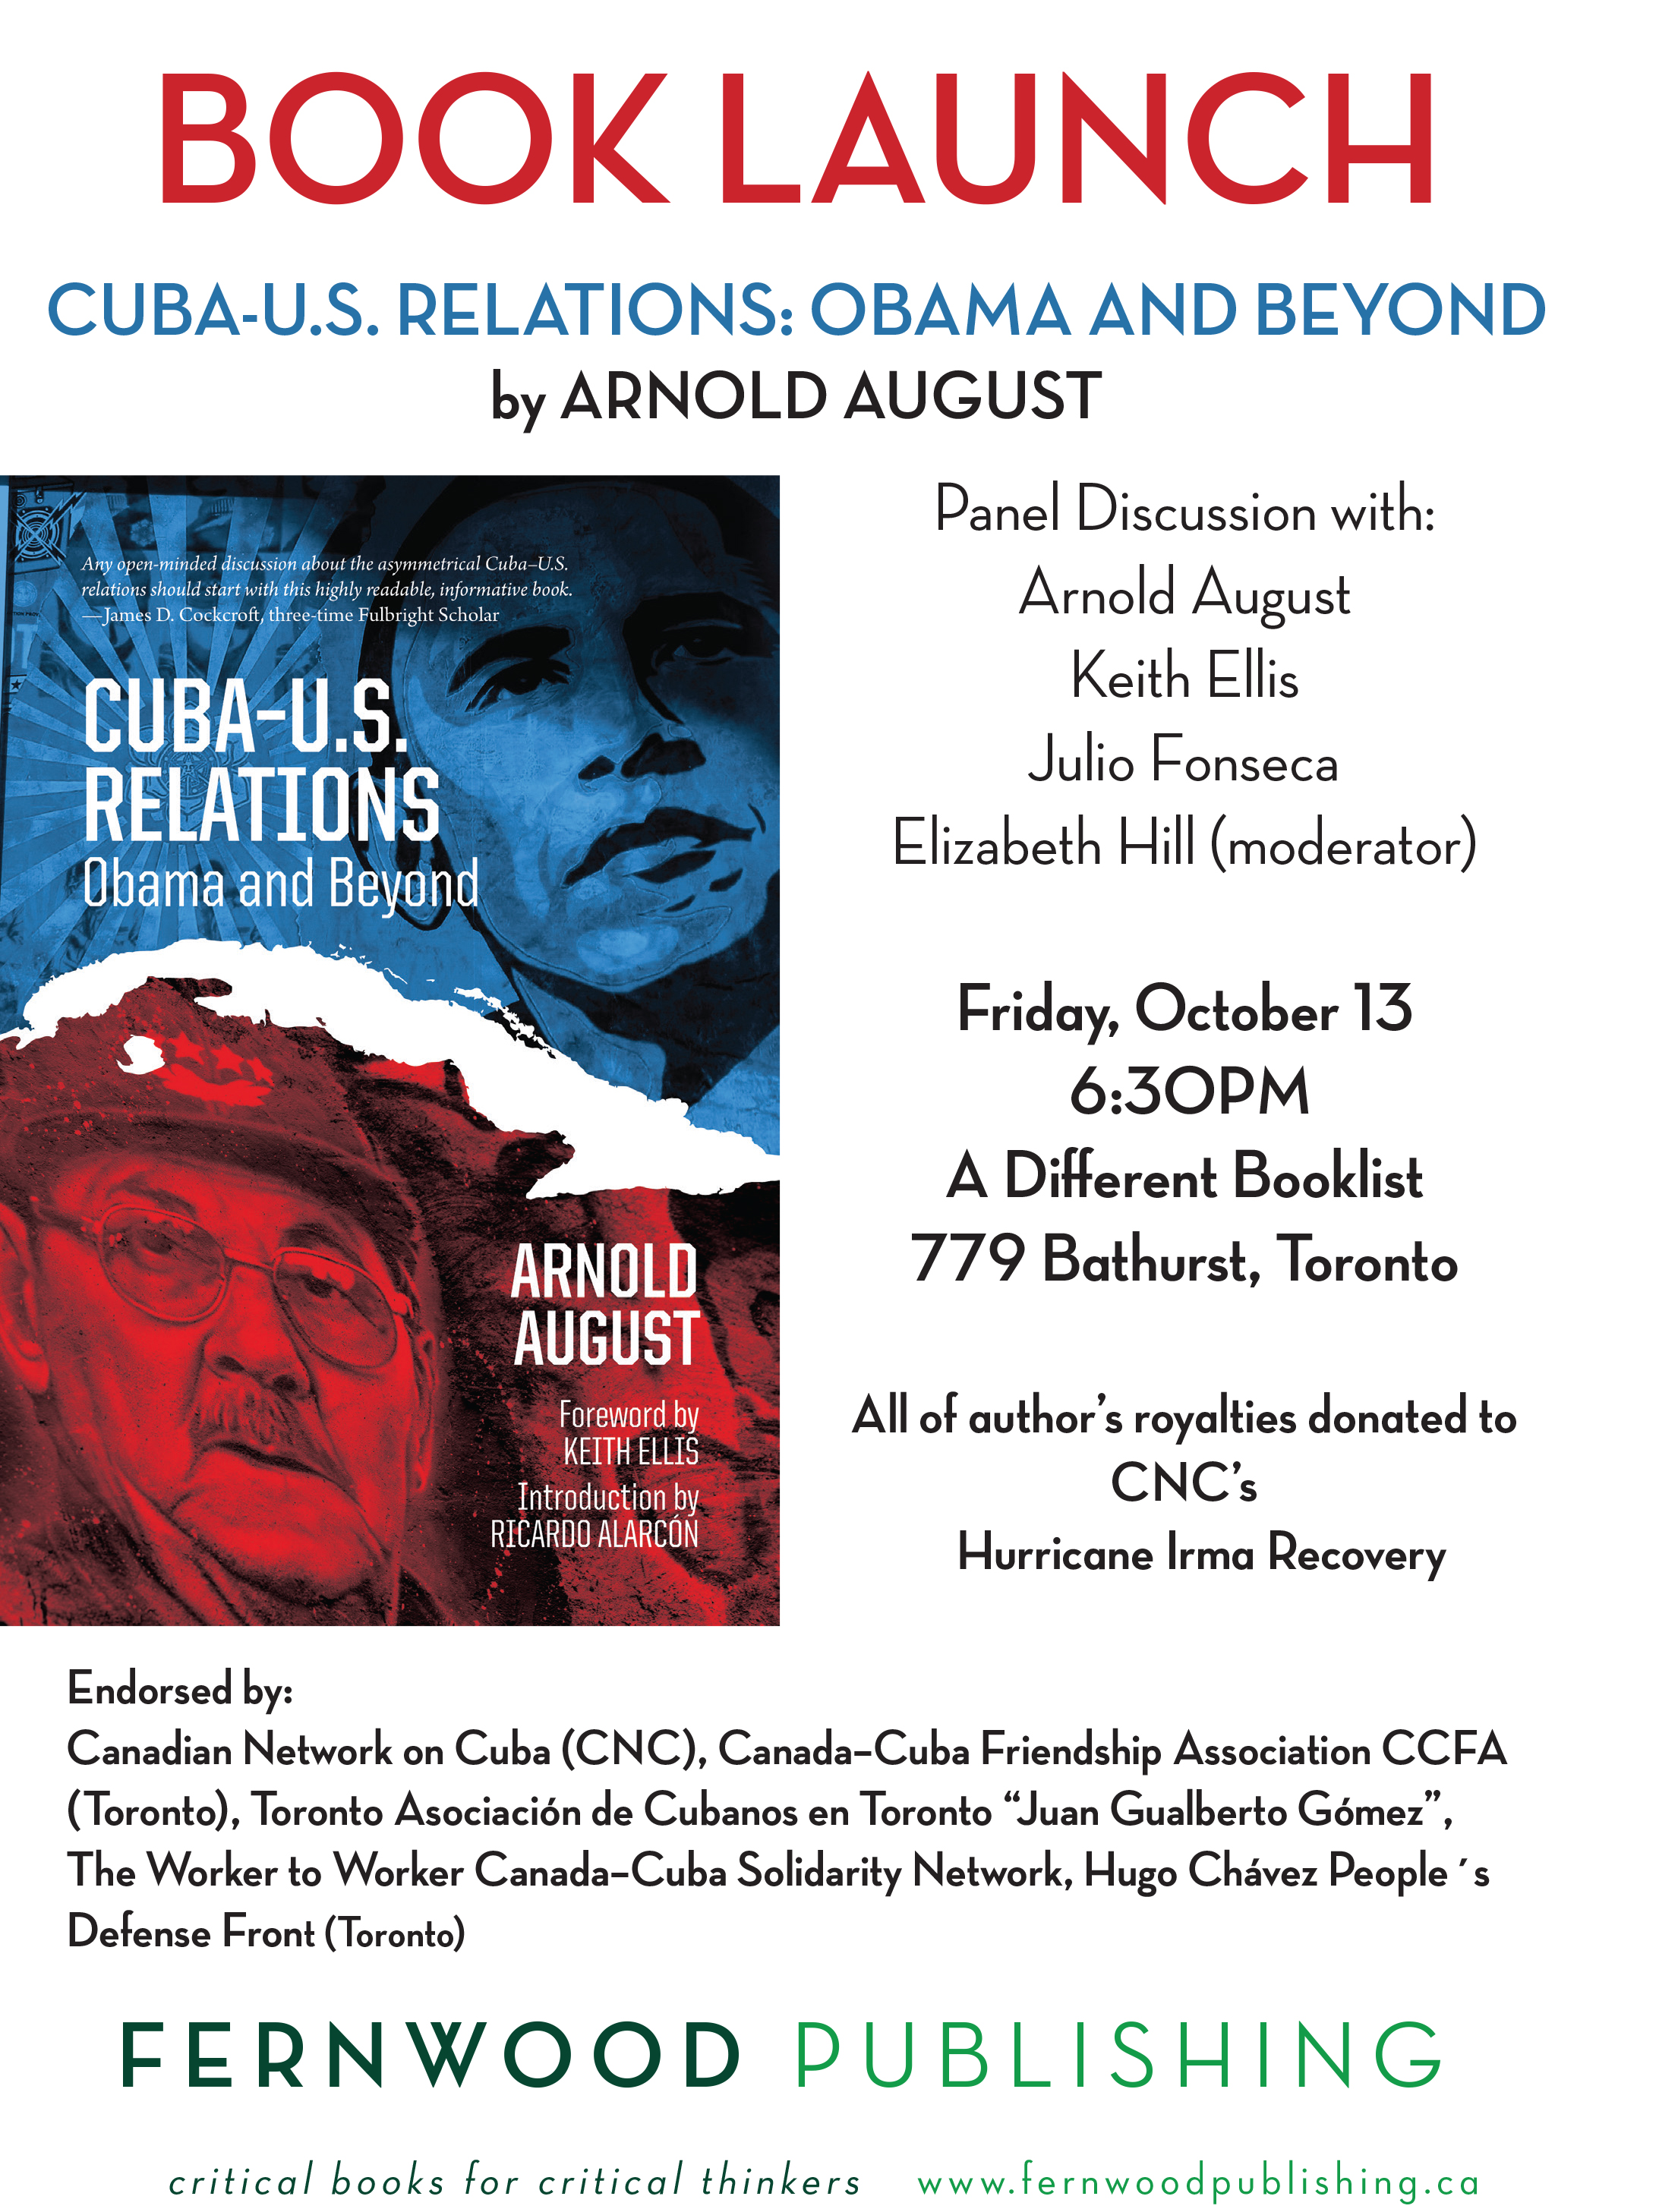 Book Launch: CUBA-U.S. Relations: Obama and Beyond By Arnold August